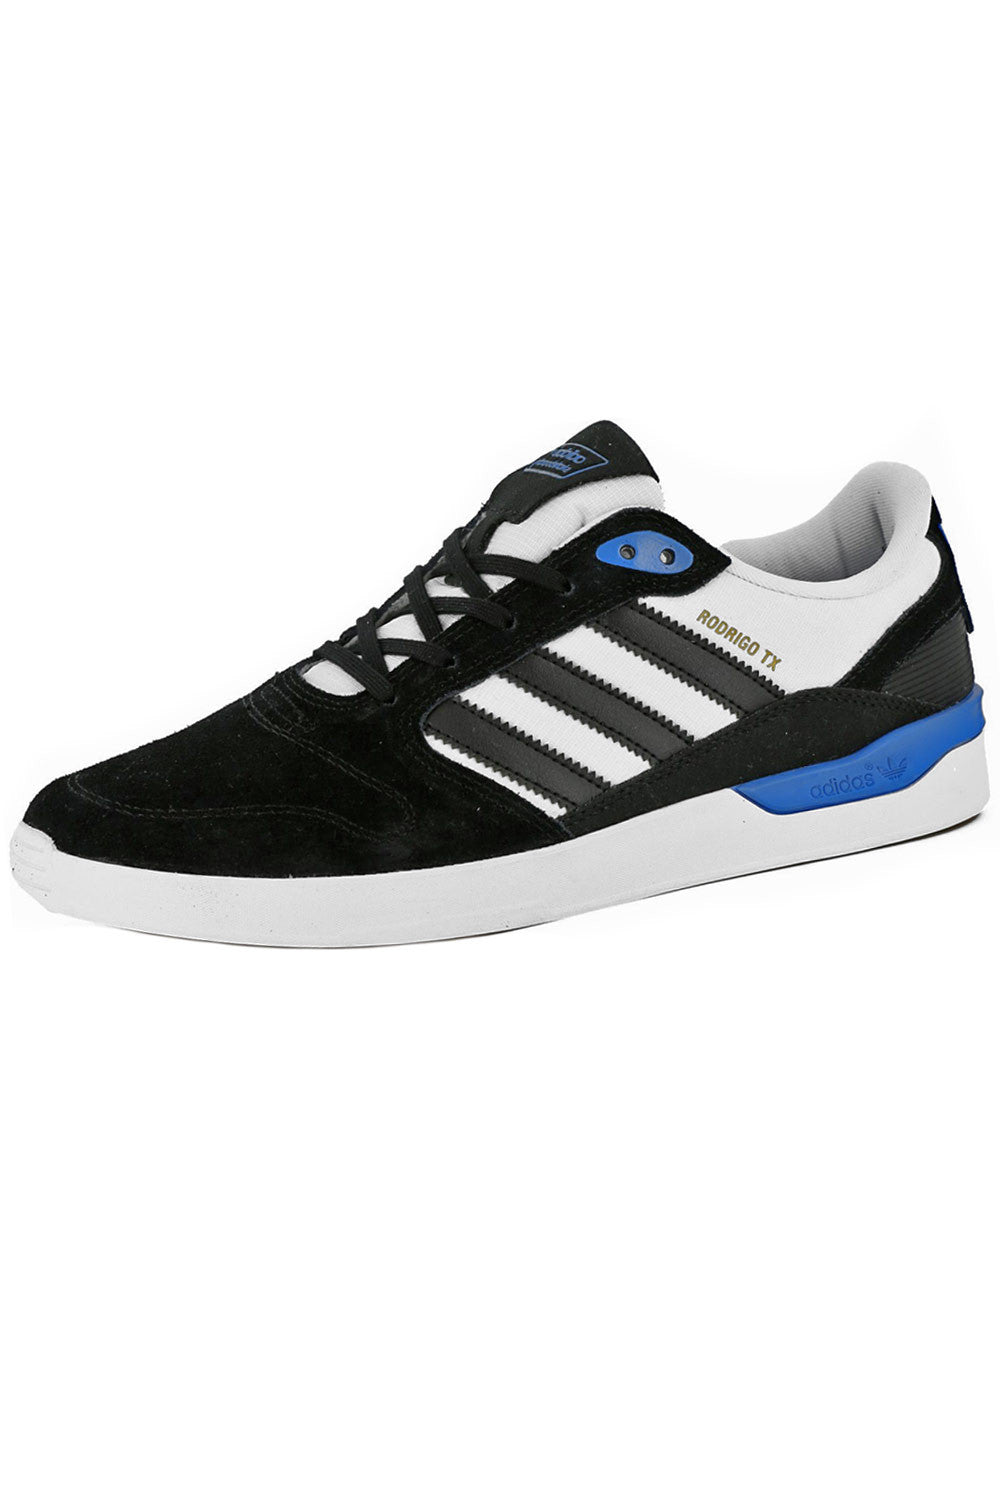 reputable site 11ceb 81433 Adidas Zx Vulc Shoes – Mainland Skate & Surf